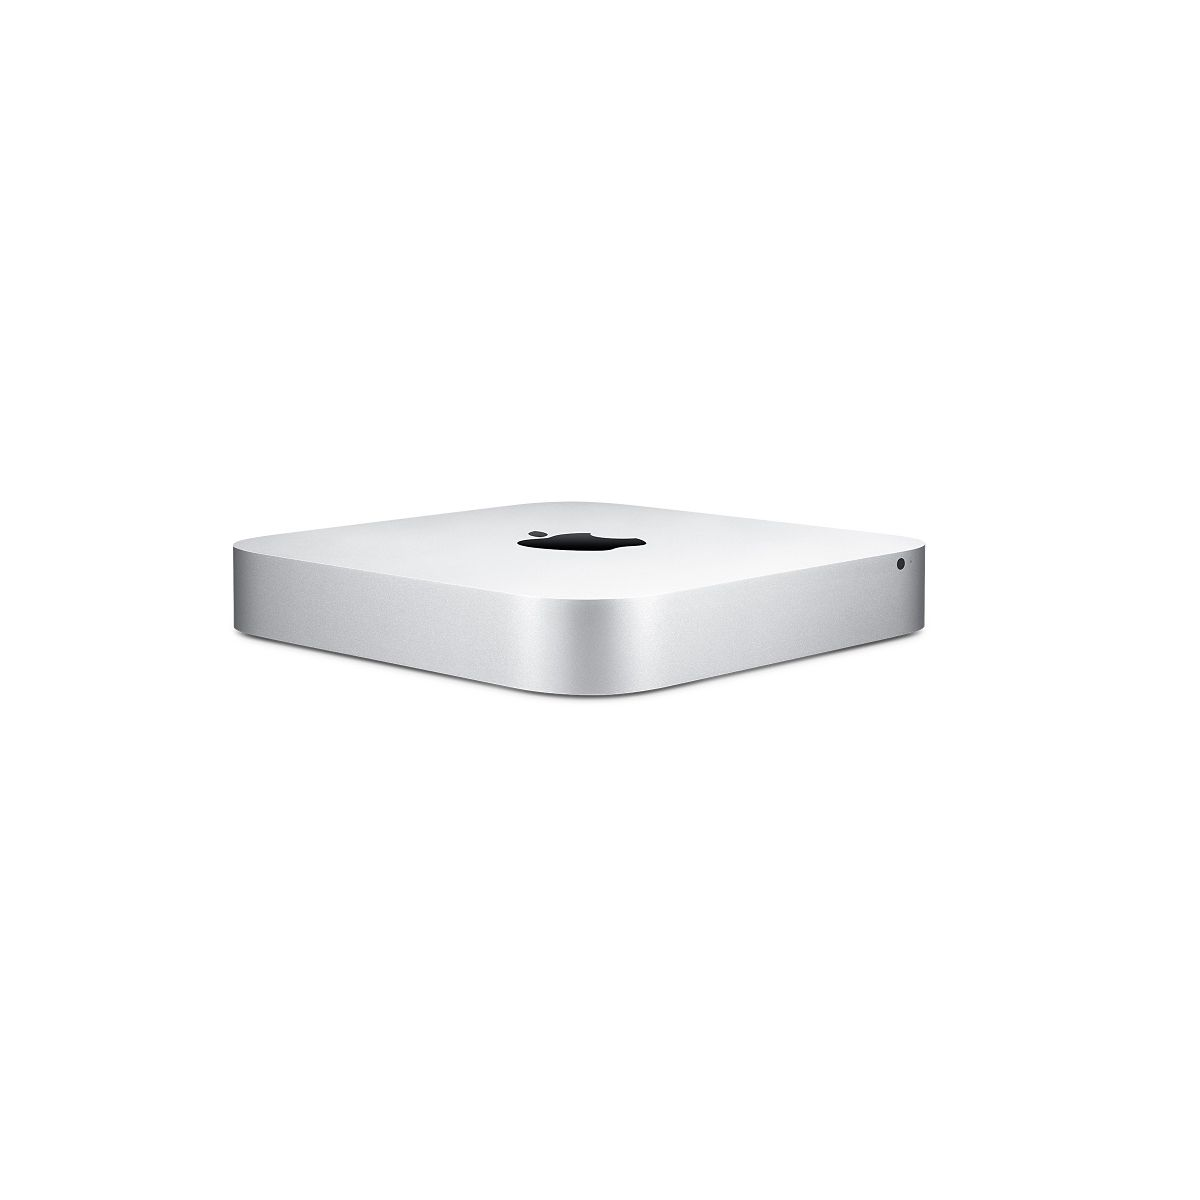 Apple mac mini 2.8ghz 8go 1to fusion drive - mgeq2f/a (photo)